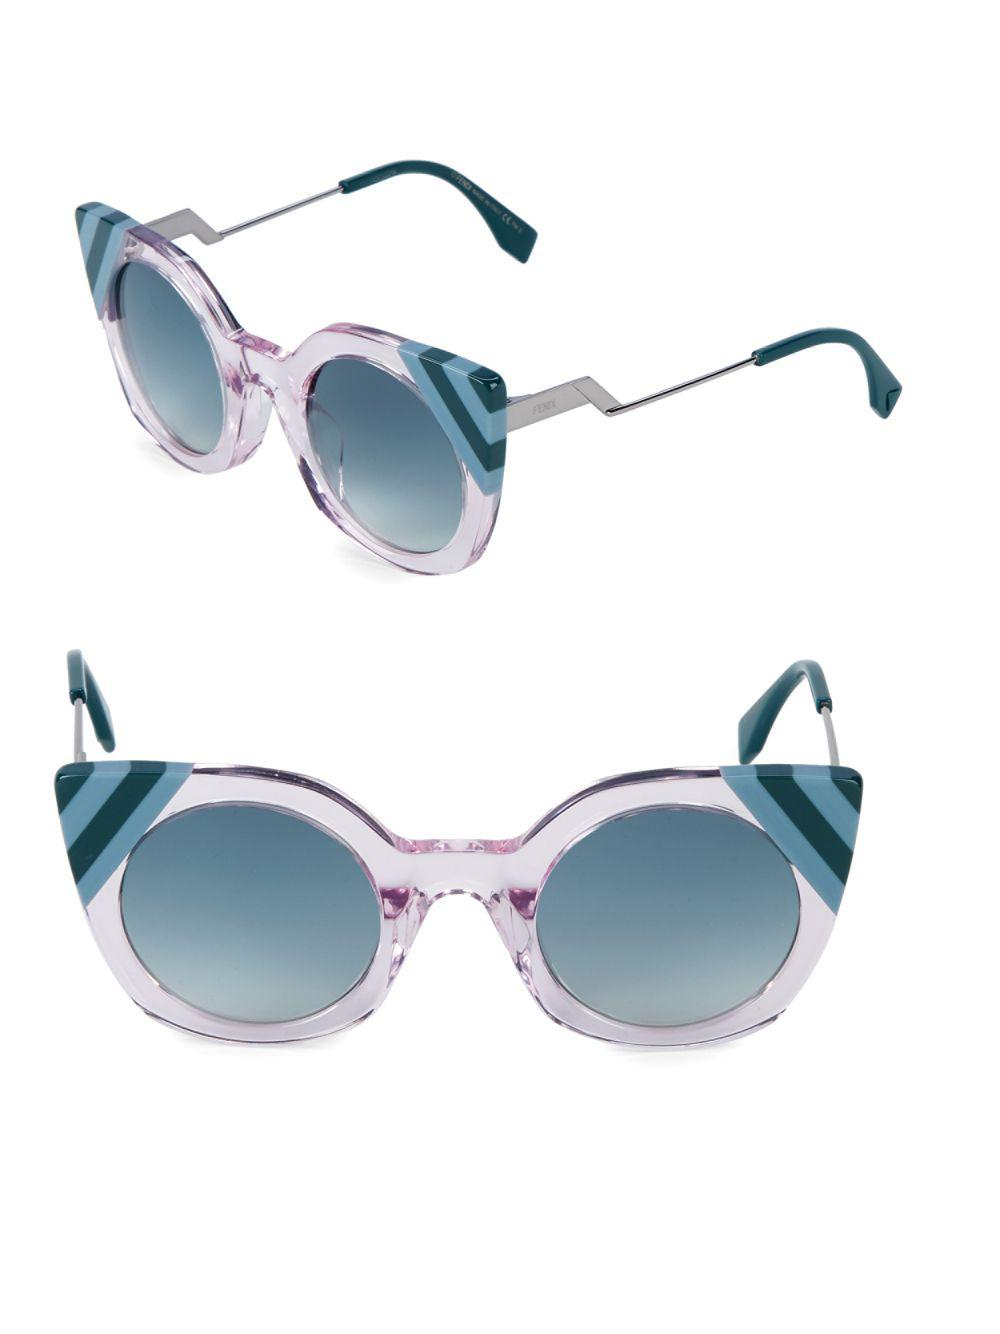 6b89635fa73e Fendi - Blue 47mm Butterfly Sunglasses - Lyst. View fullscreen